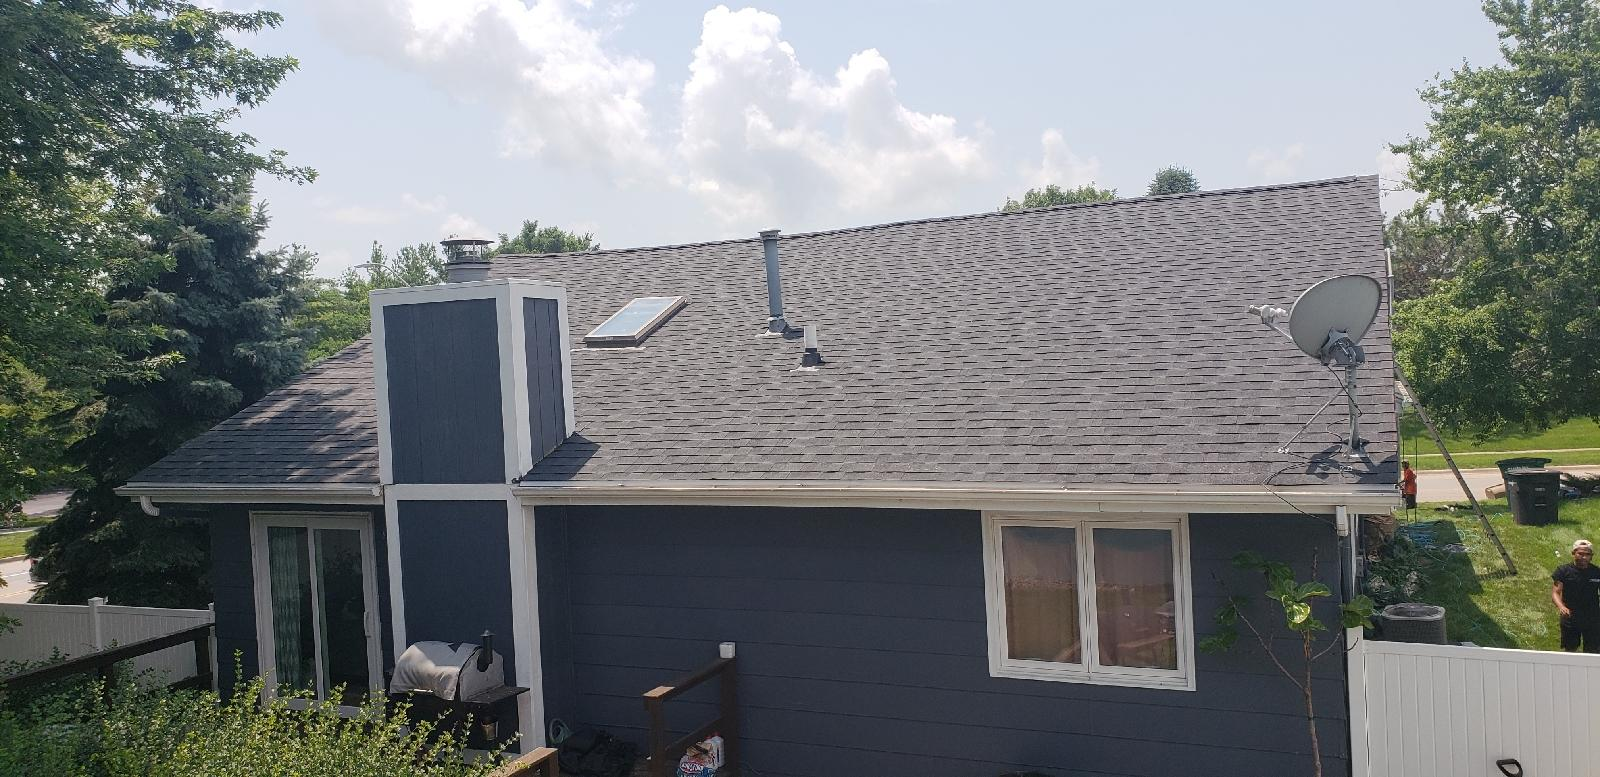 Local Roofer Roofing Contractor Near Me Residential Roofing